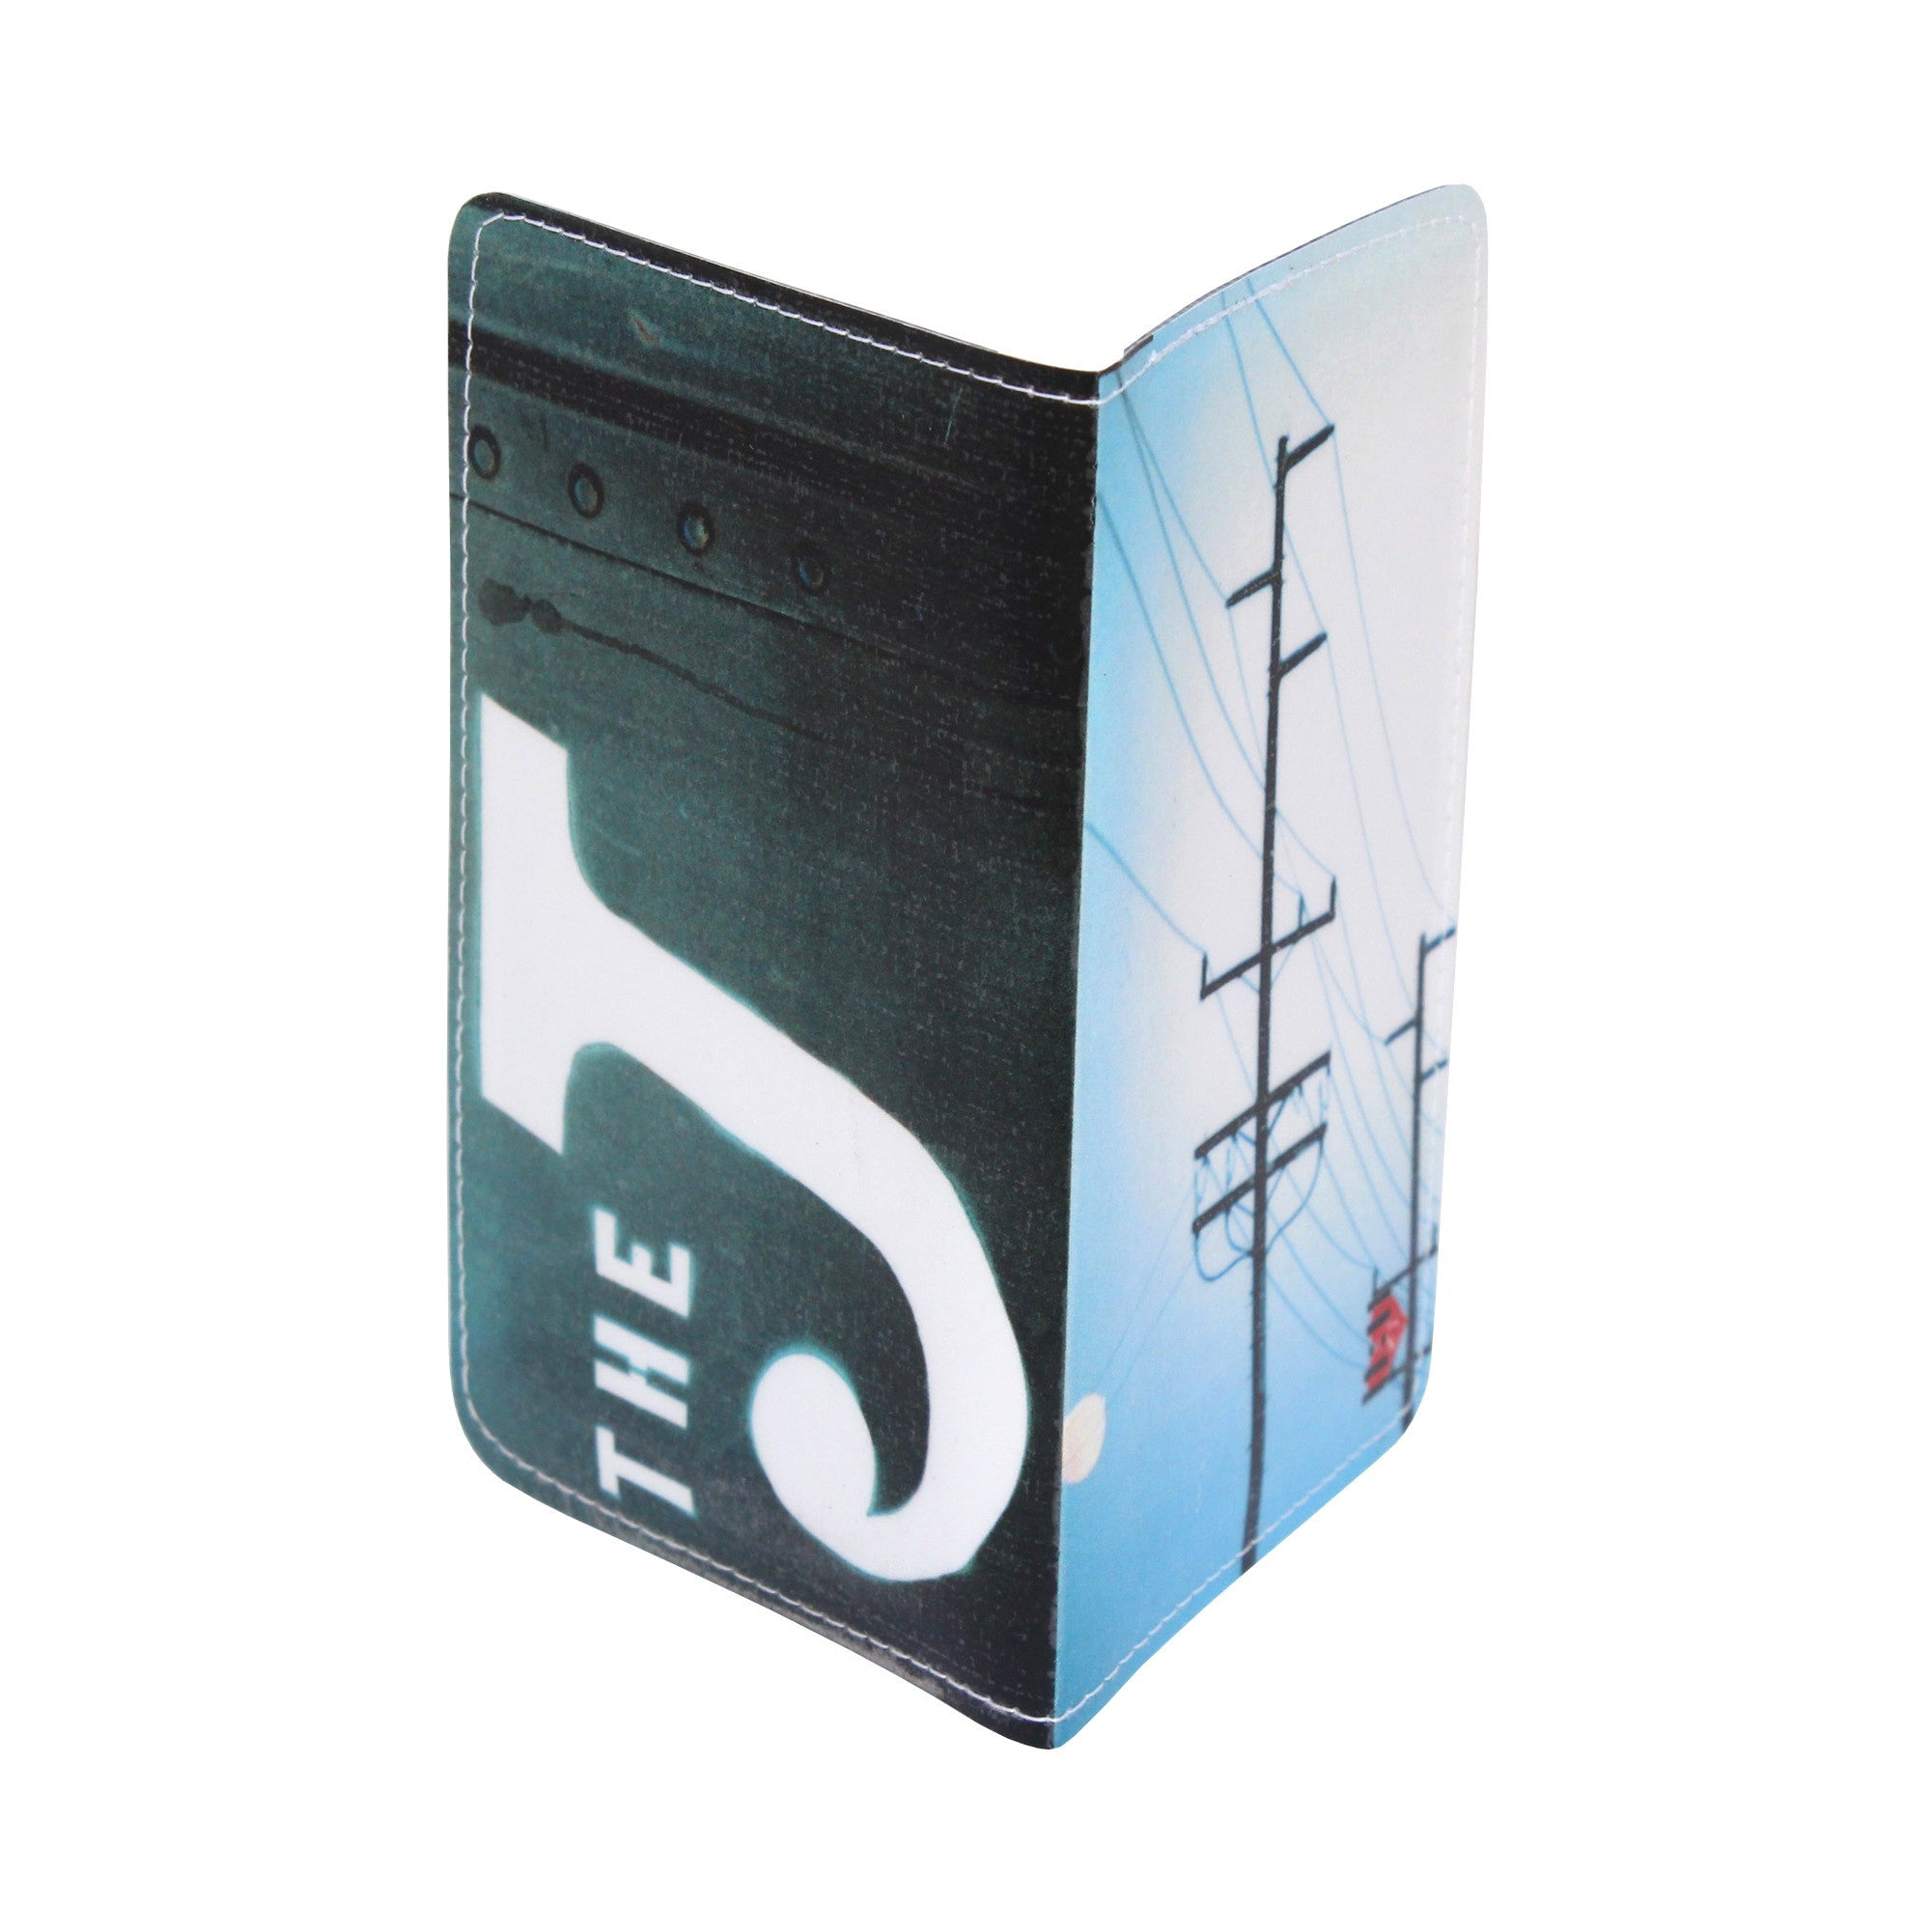 The Jay Business, Credit & ID Card Holder